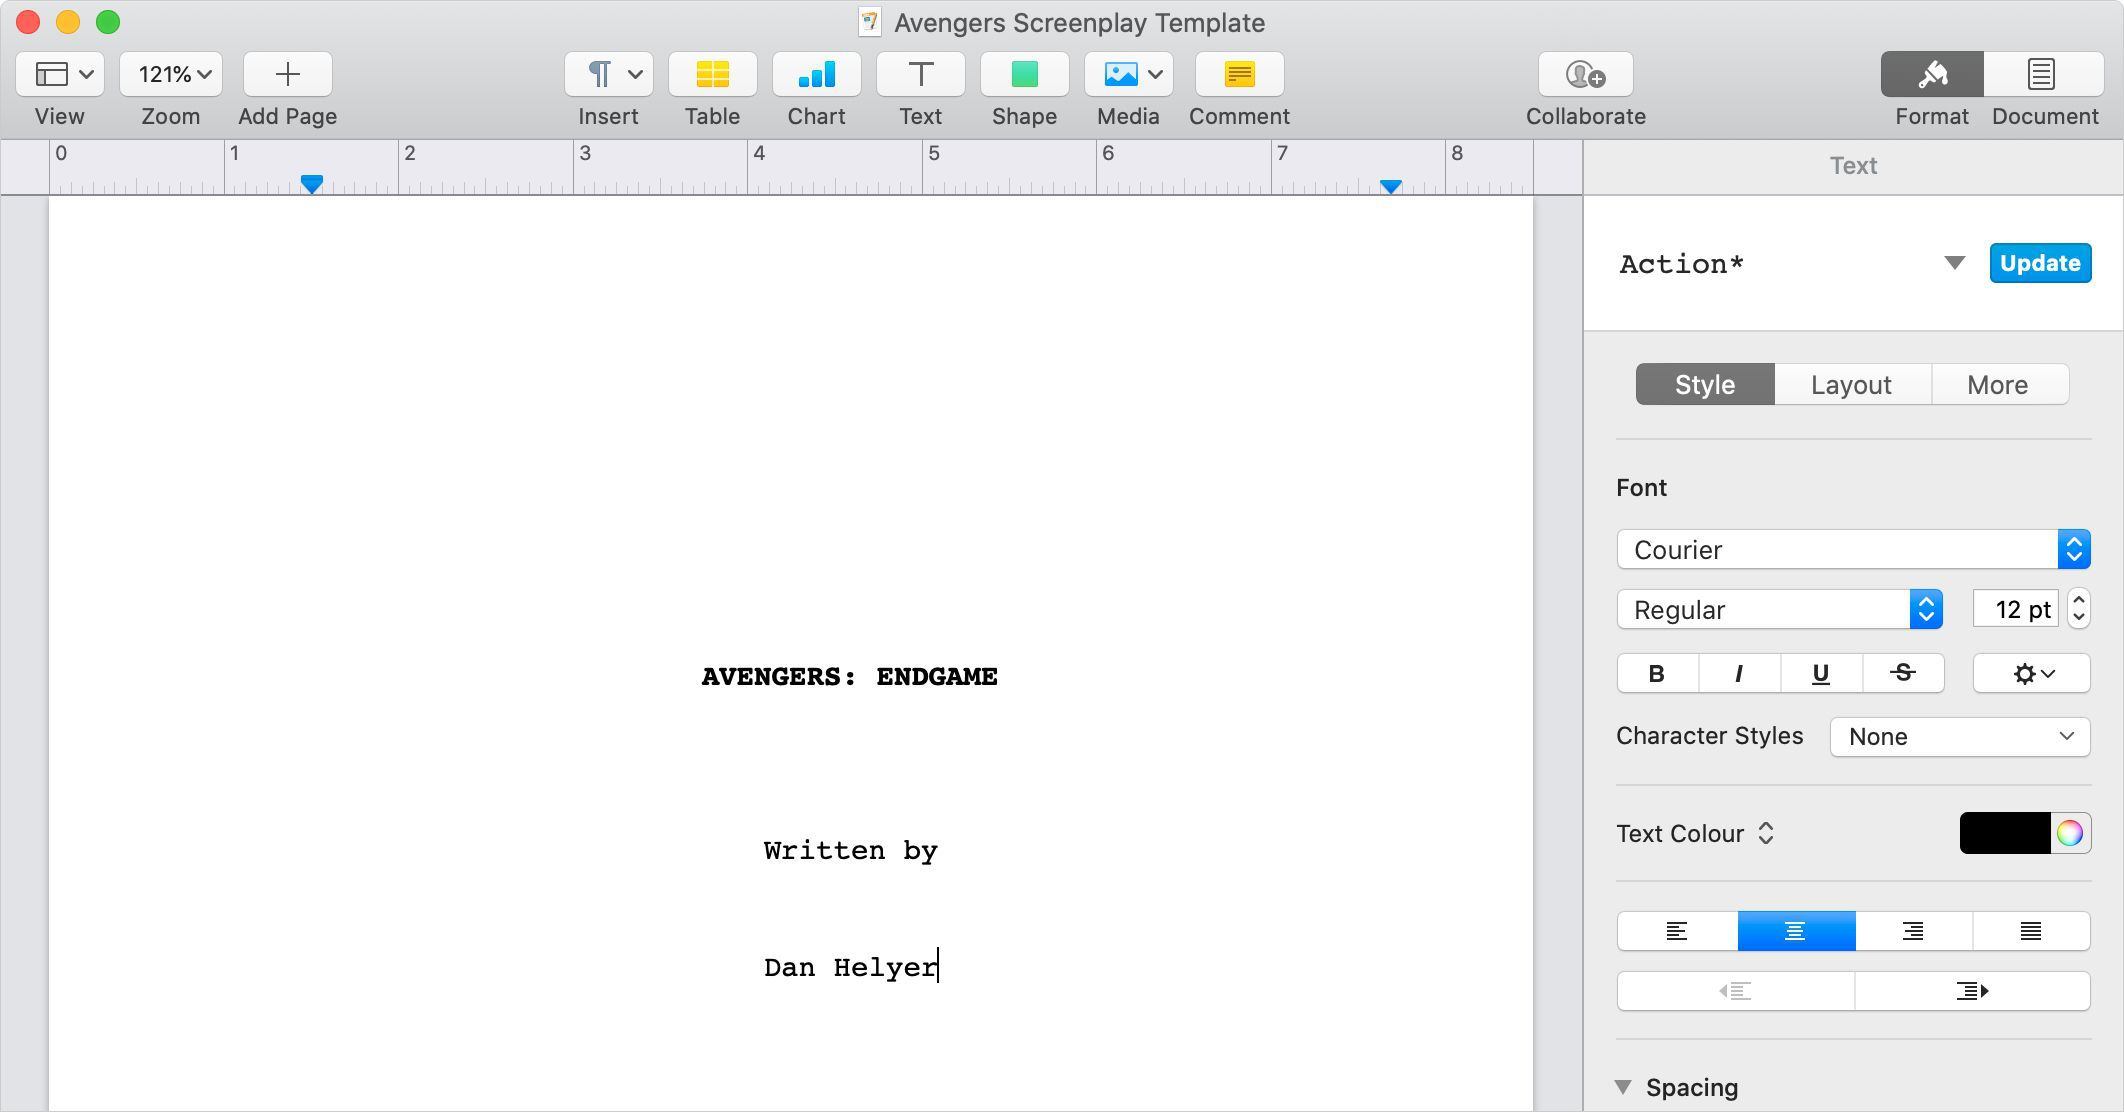 008 Fearsome How To Use Microsoft Word Screenplay Template Design Full